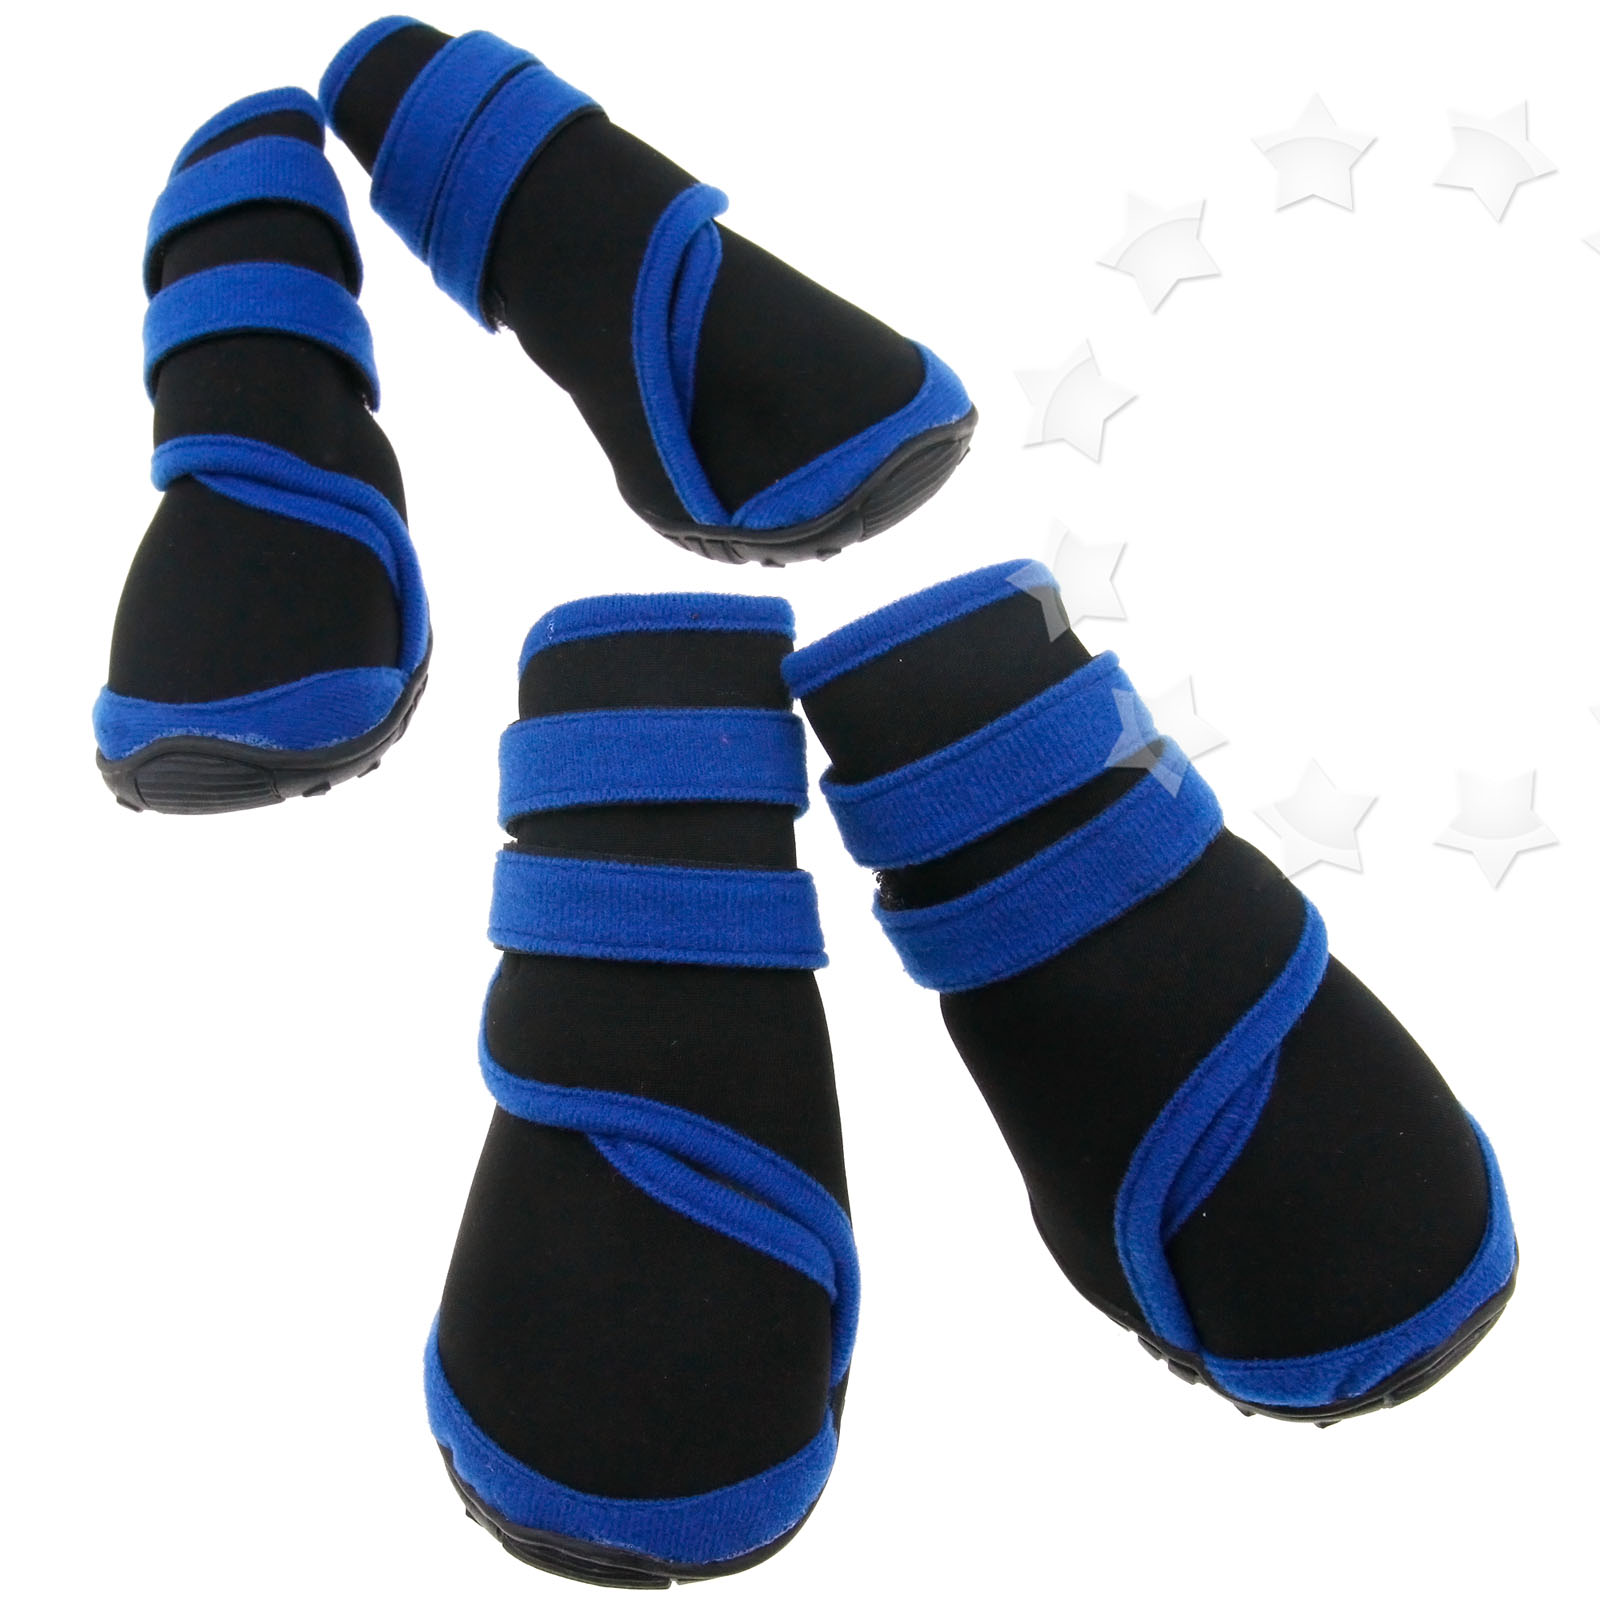 4pcs anti slip protective boots pet black